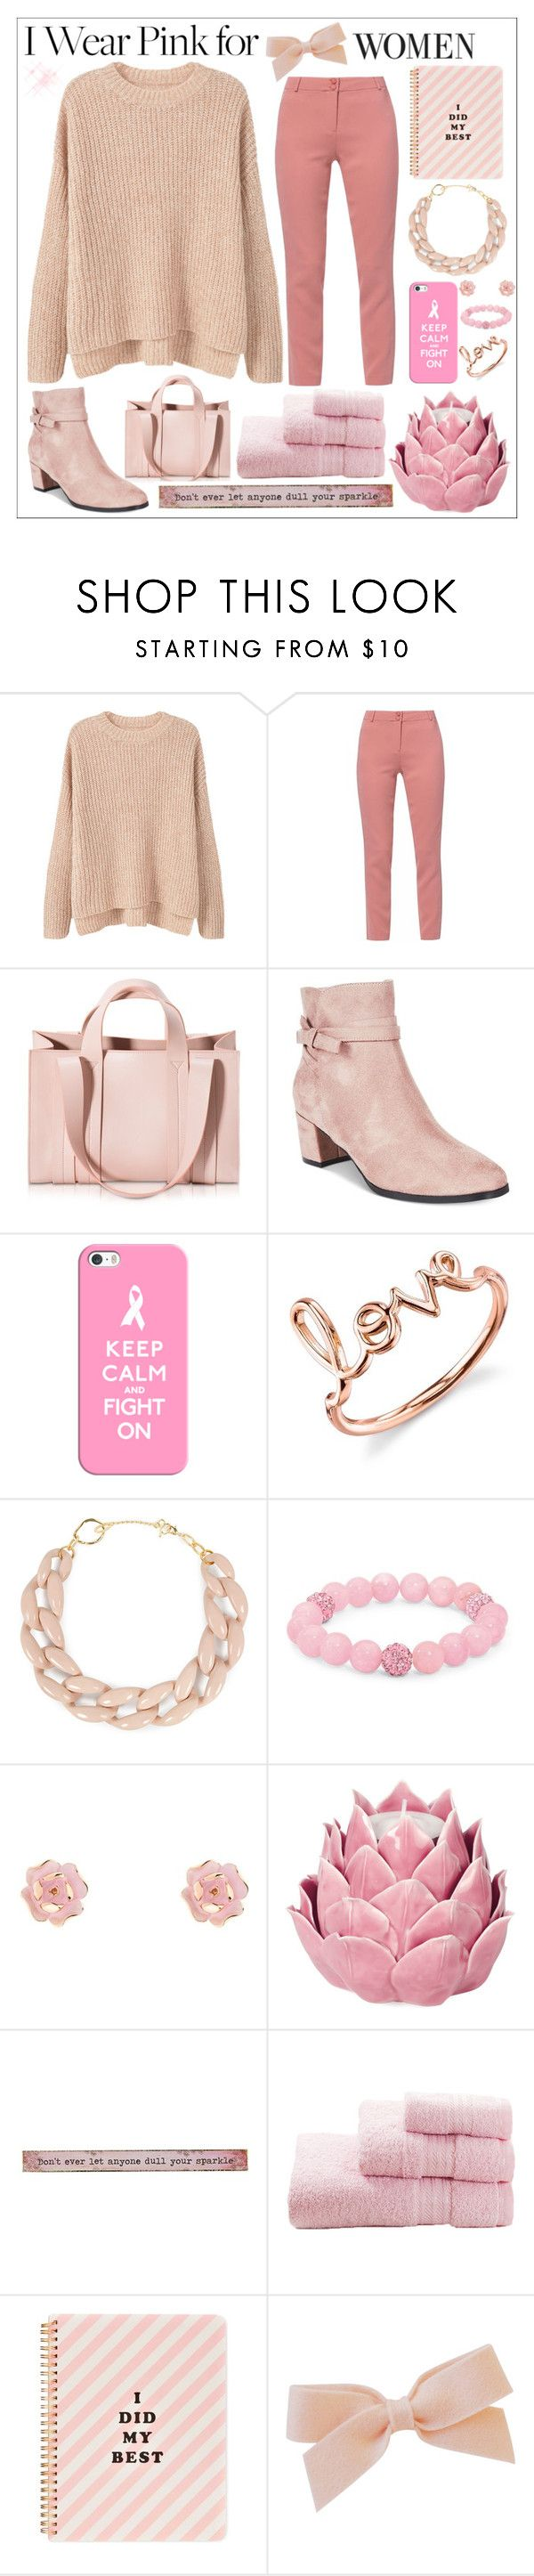 """""""pink for women"""" by perfectlydeathly ❤ liked on Polyvore featuring MANGO, WtR London, Corto Moltedo, Impo, Casetify, Sydney Evan, DIANA BROUSSARD, Palm Beach Jewelry, Ted Baker and Zara Home"""